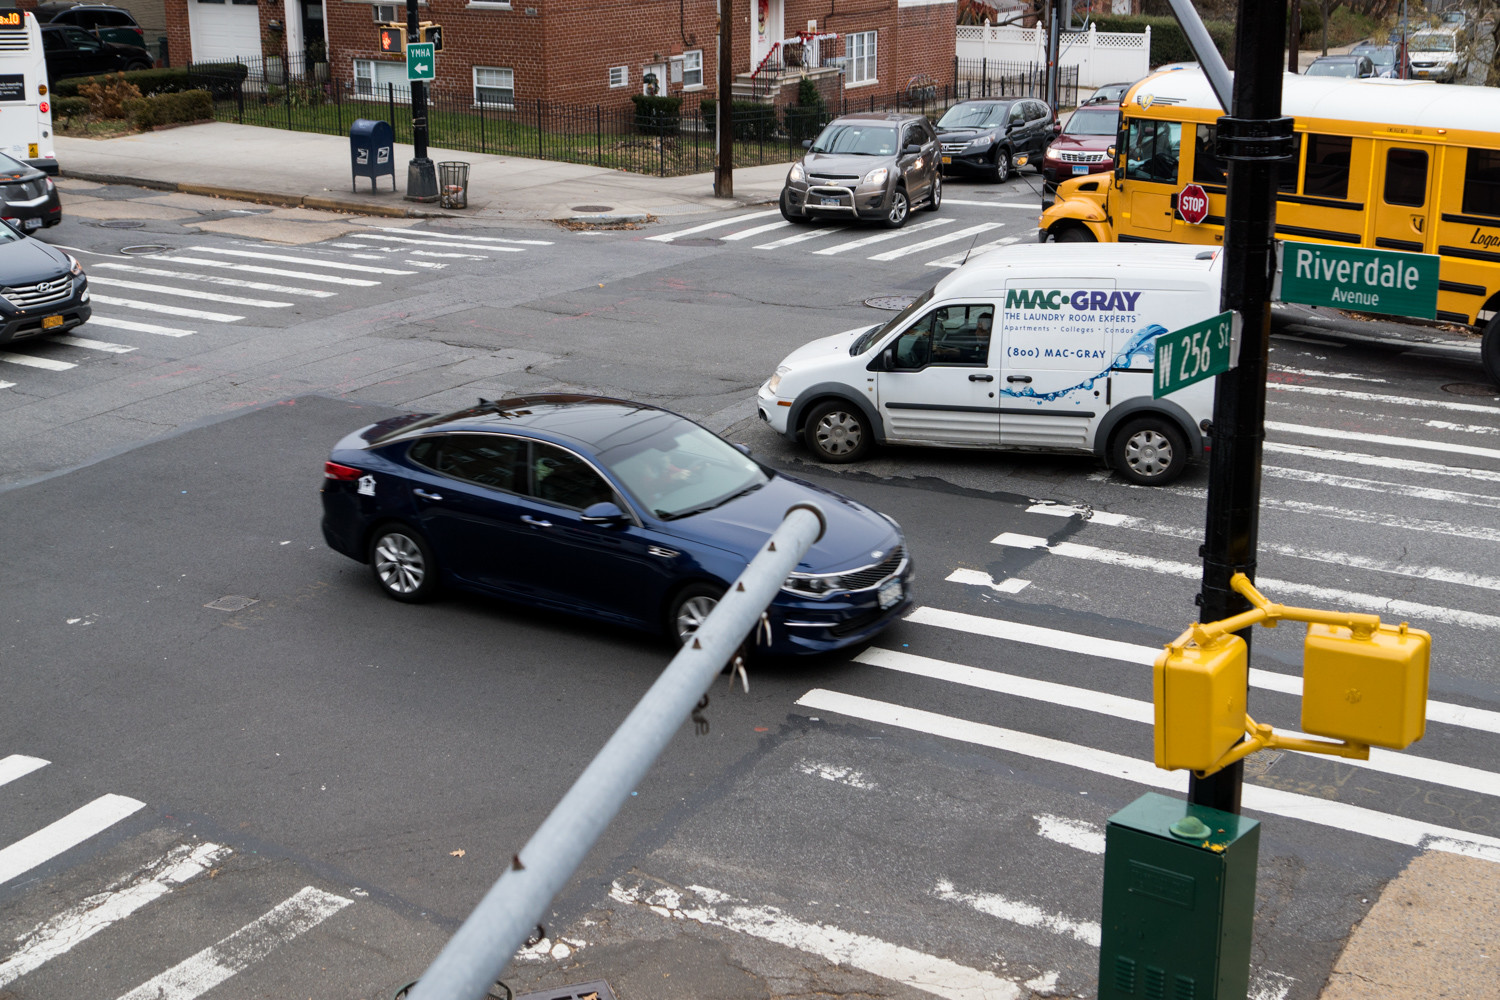 The city's transportation department nixed installing a left-turn signal at West 256th Street and Riverdale Avenue.